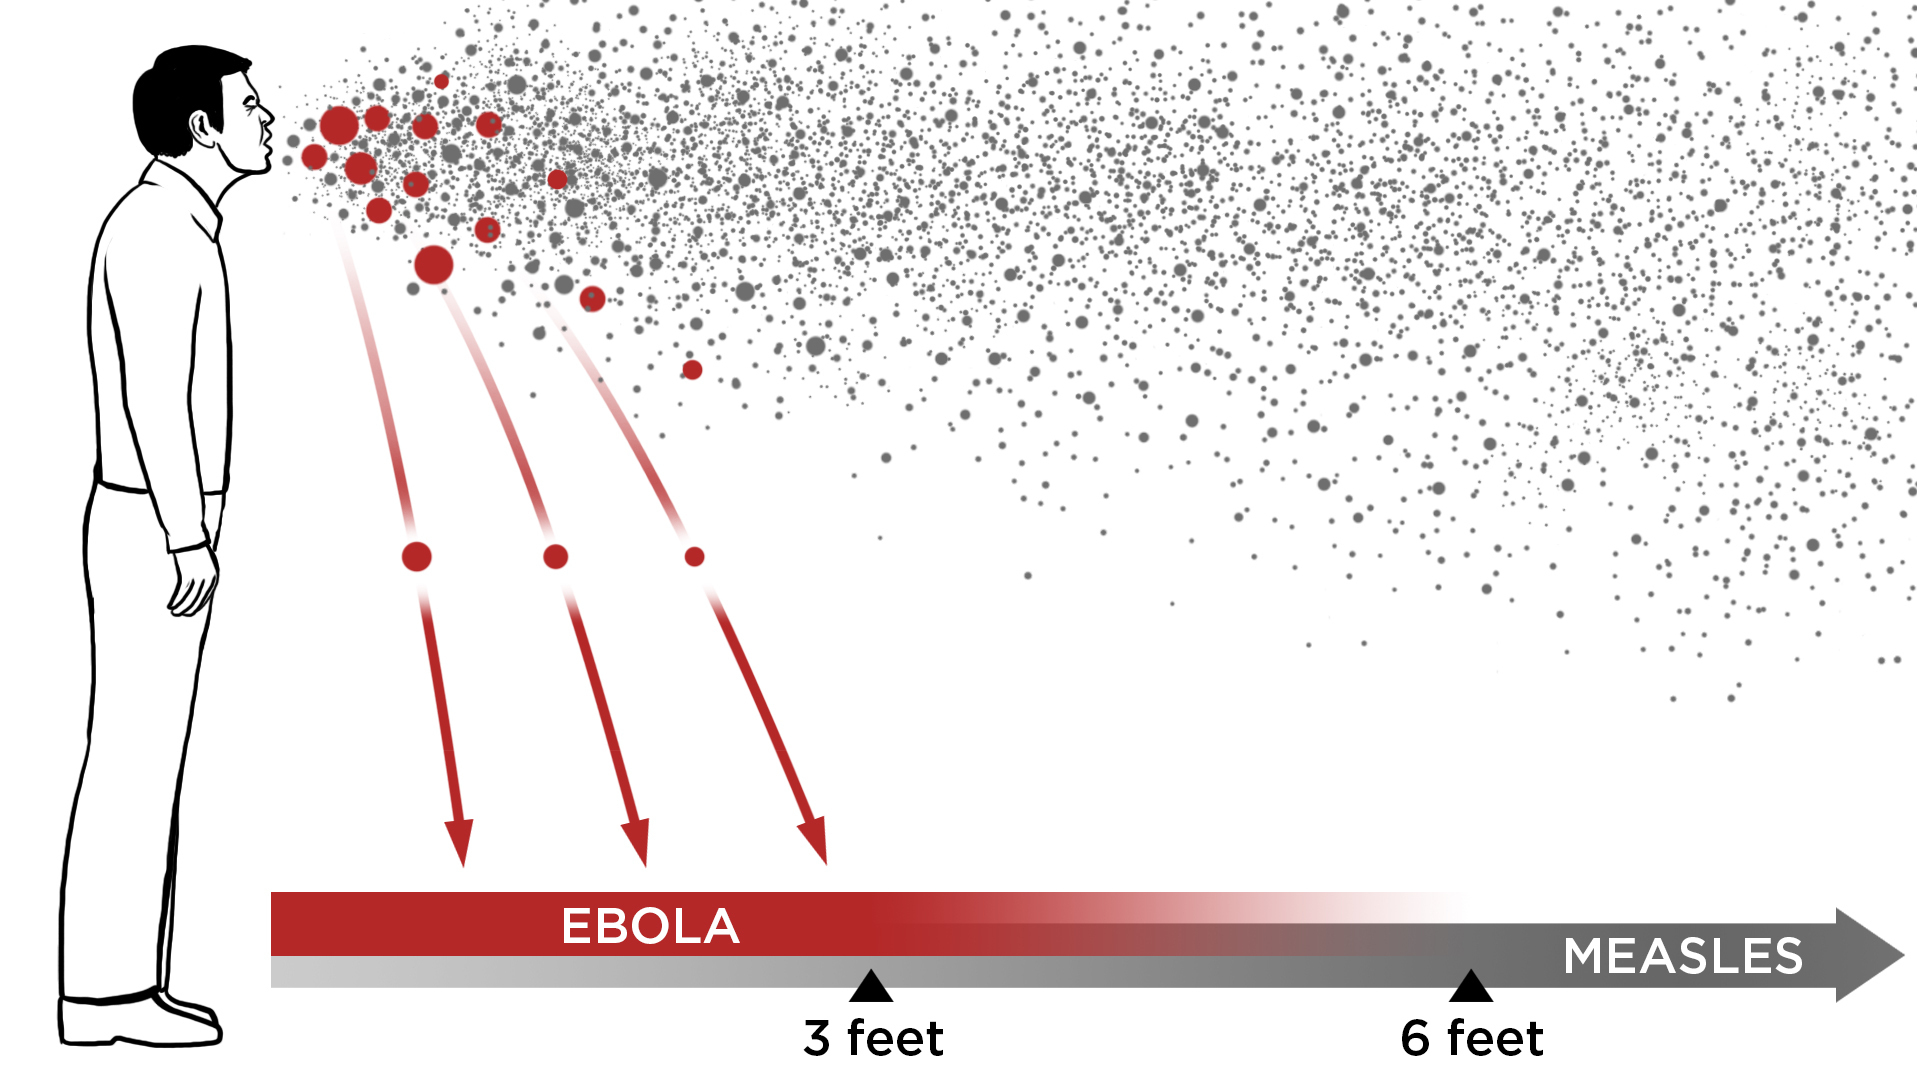 Ebola In The Air: What Science Says About How The Virus Spreads